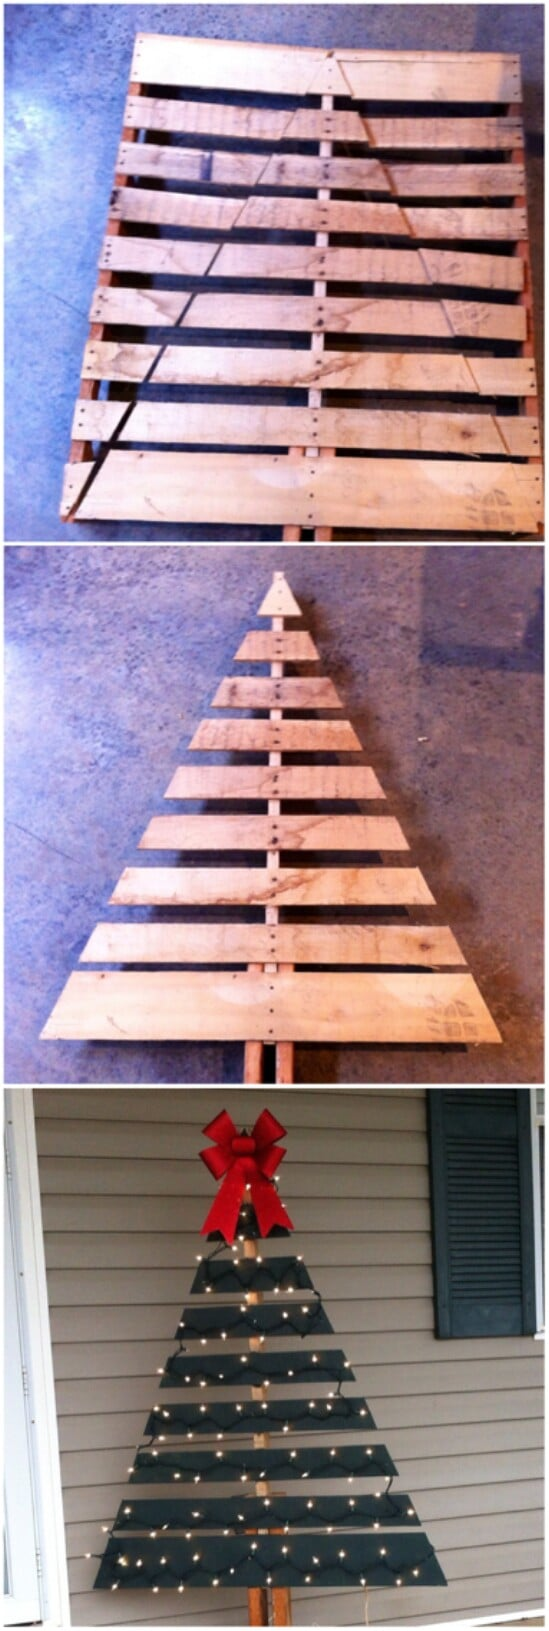 diy pallet christmas tree - Lighted Christmas Tree Lawn Decoration